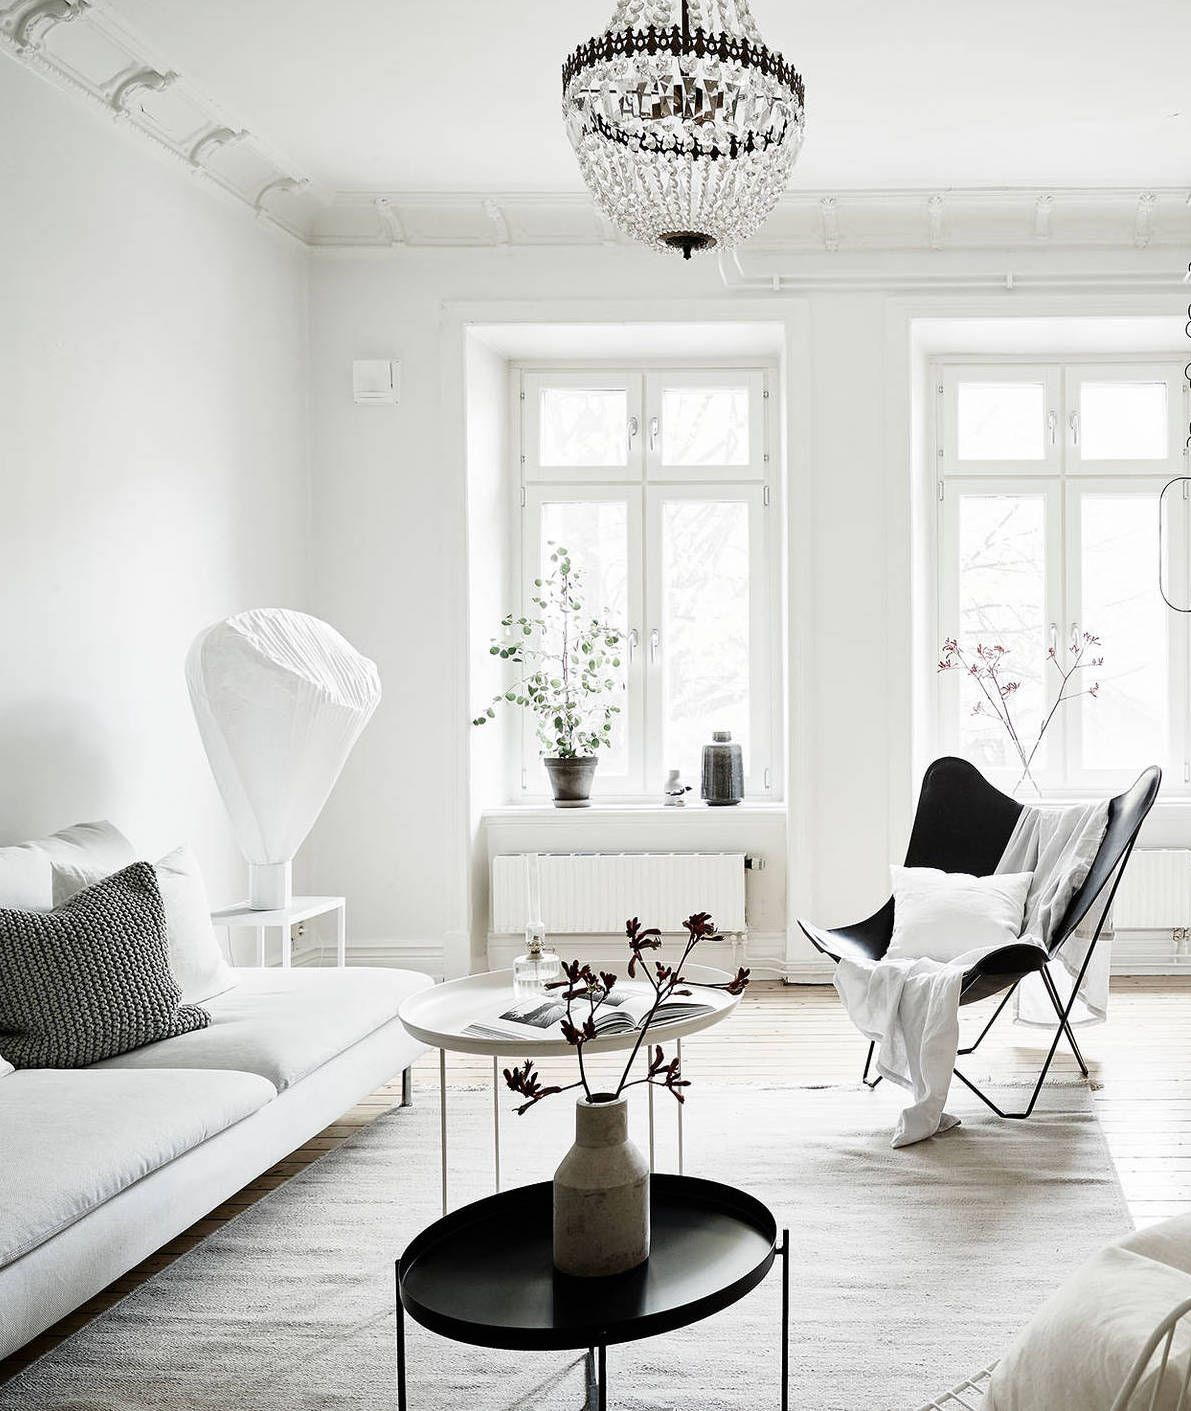 This Bright And White Home Looks All But Cold To Me. The Wooden Details And  Fall Plants Around The House Make This Place Look Very Cozy And Inviting.